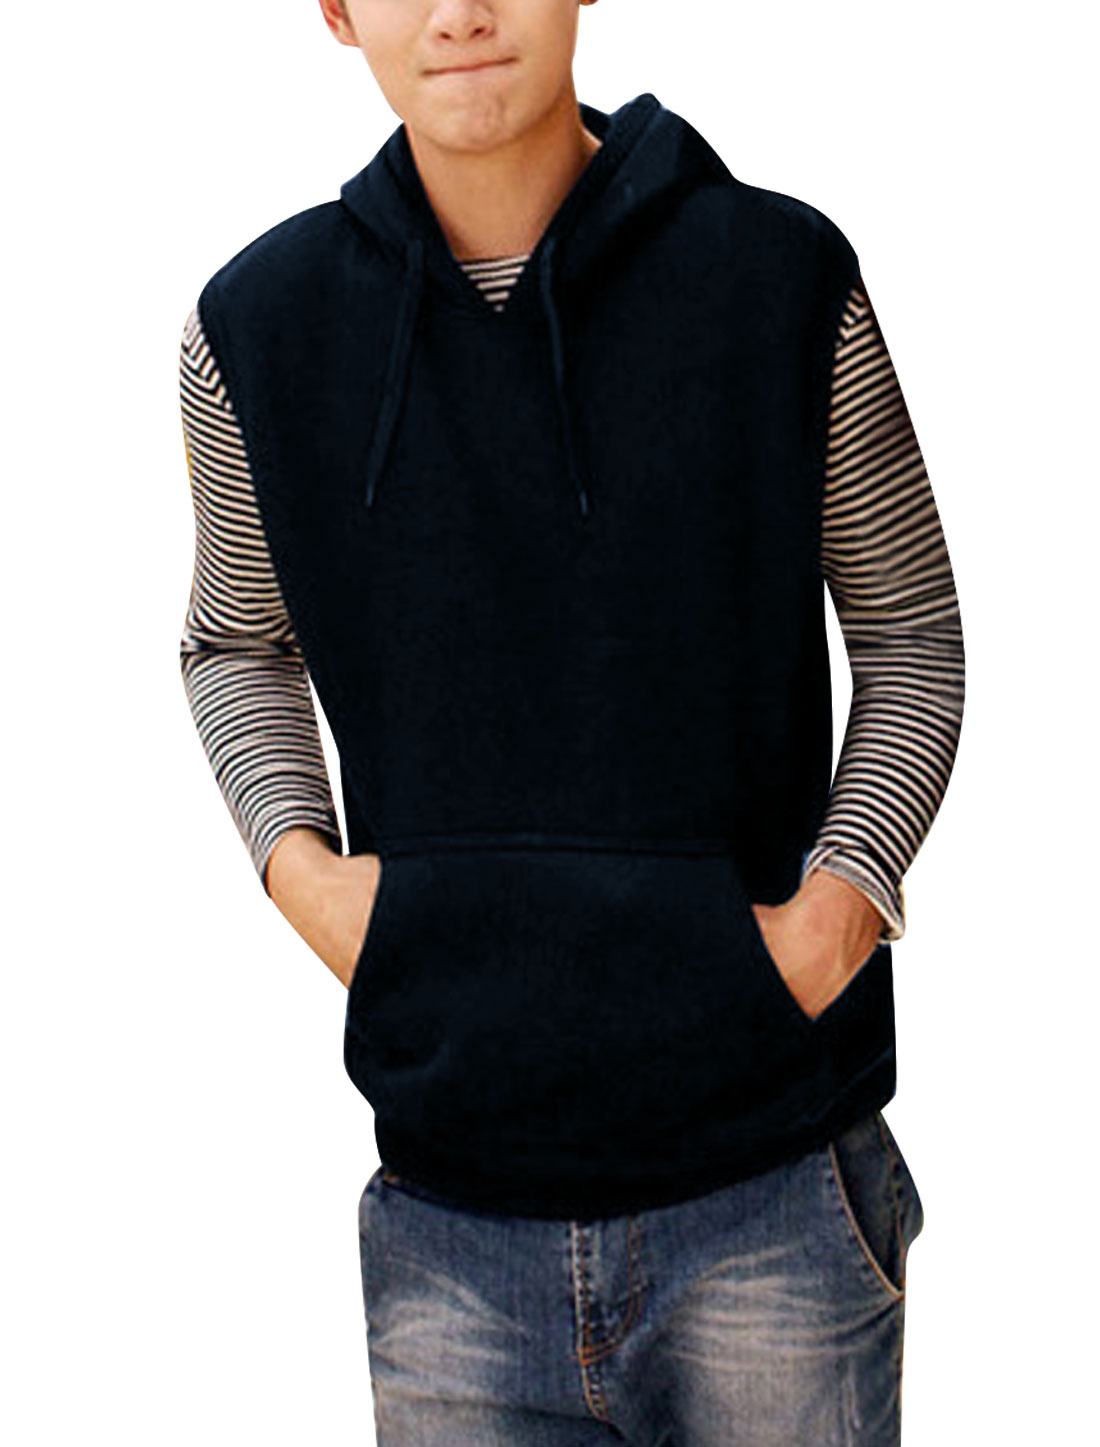 Men Pullover Sleeveless Casual Hooded Vest Navy Blue M